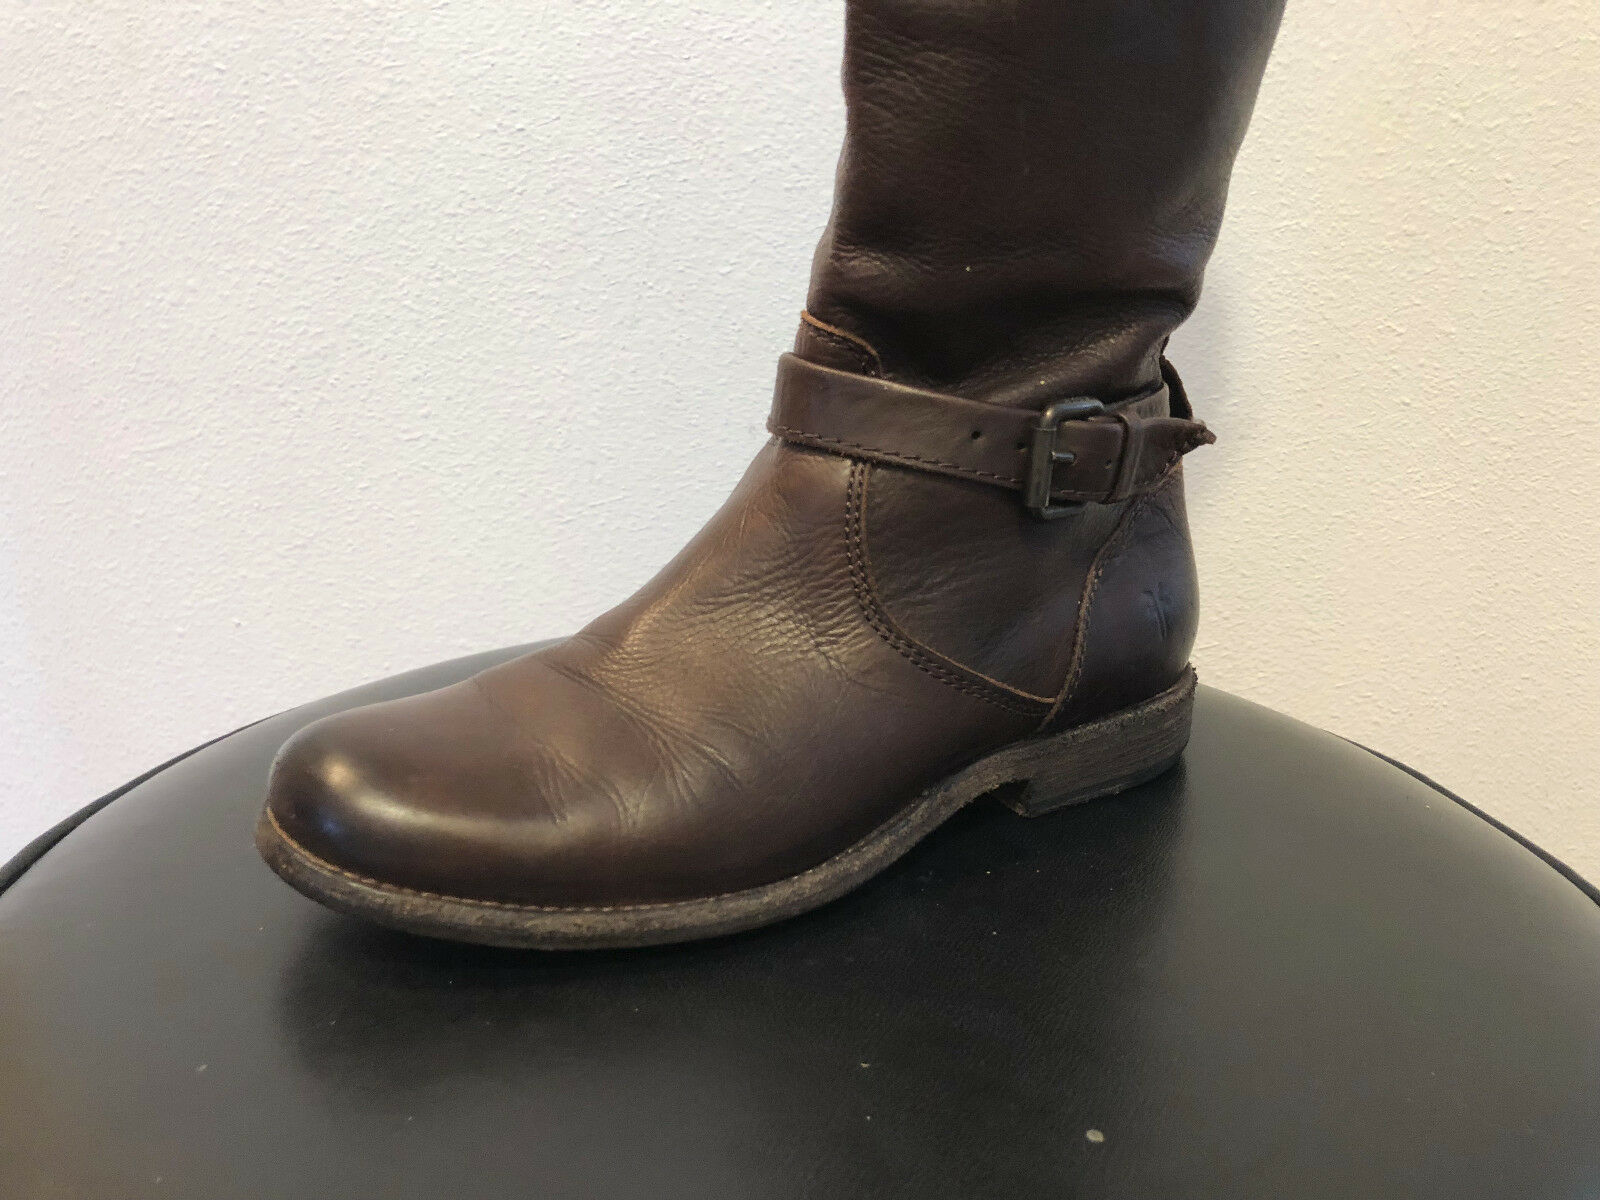 FRYE's Designer women's knee high leather boots size 7.5B